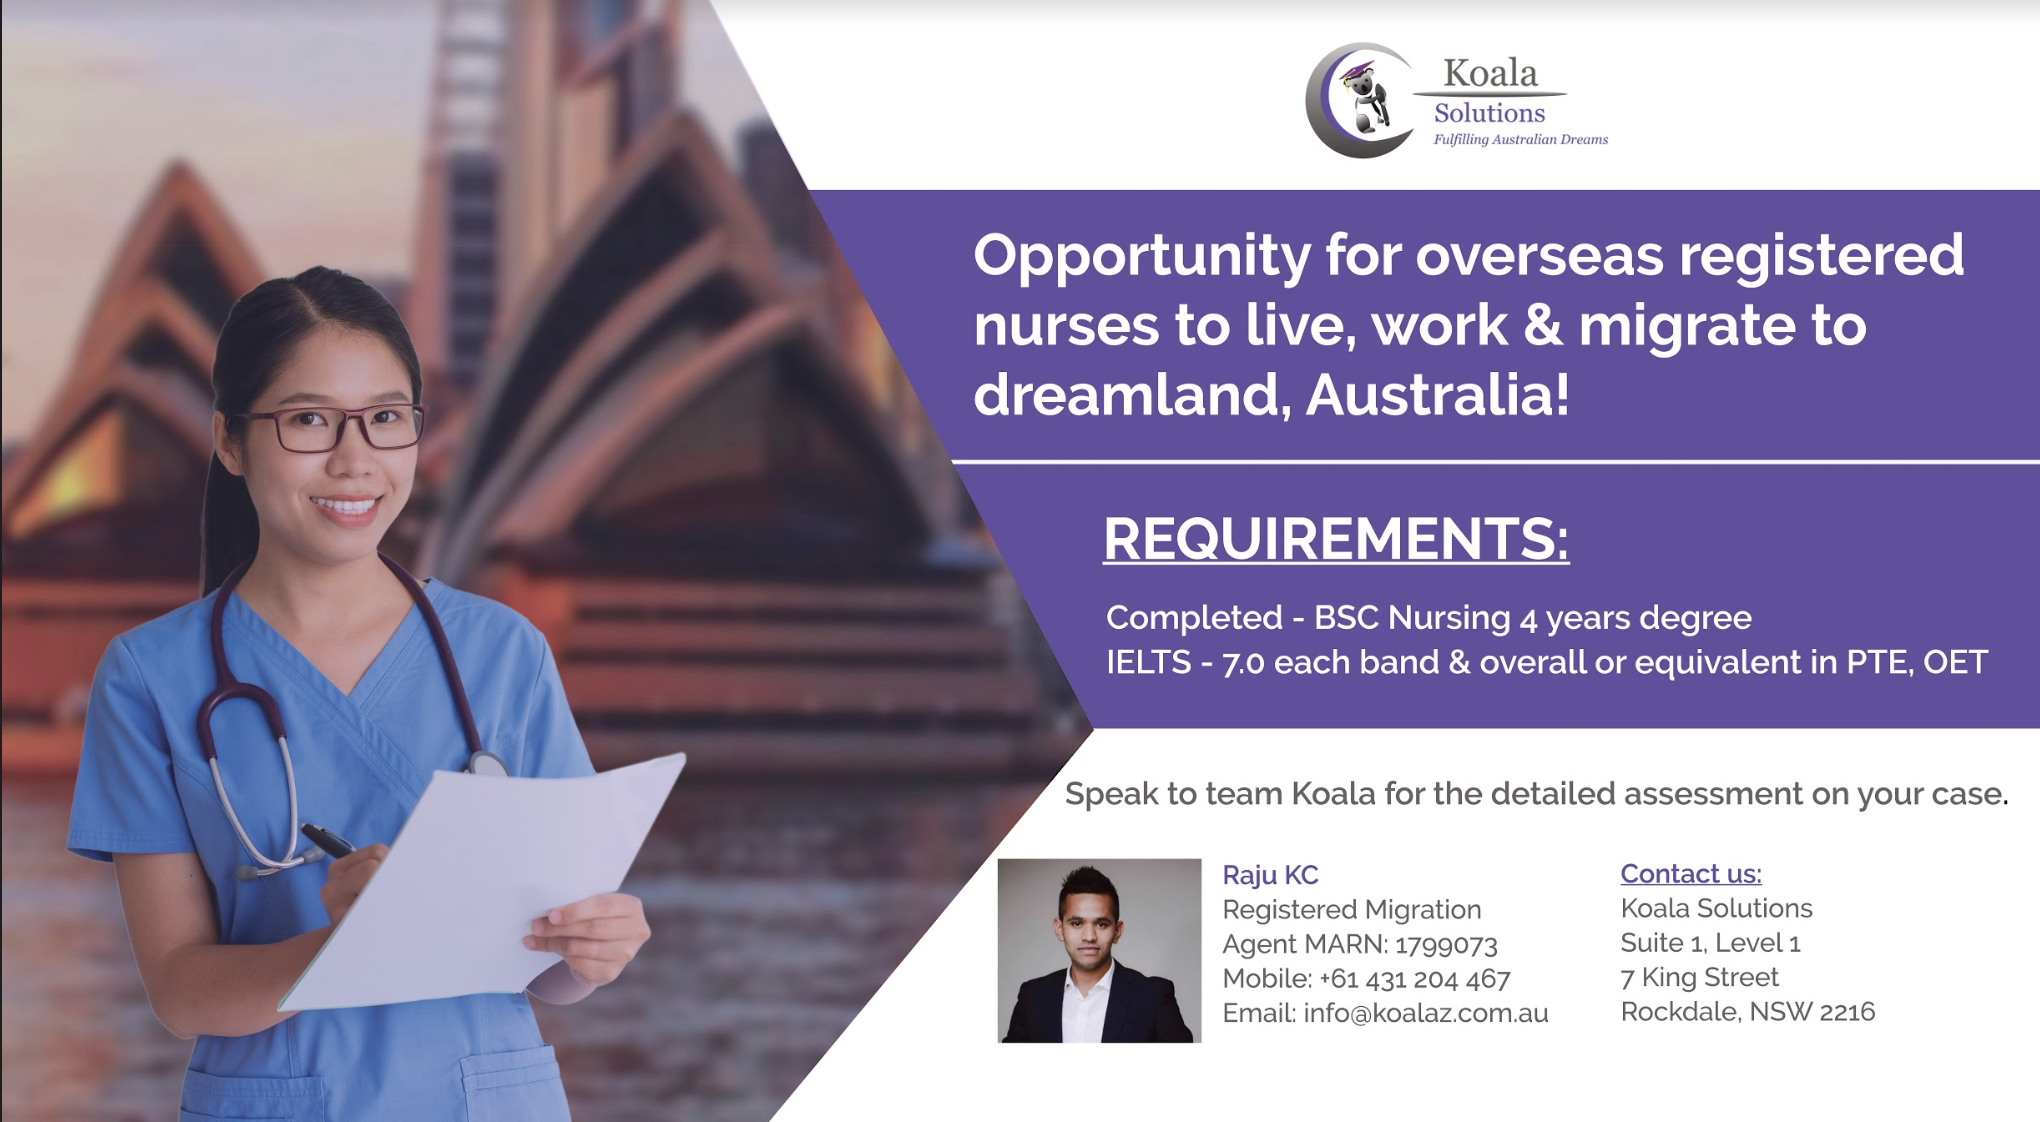 Opportunities for overseas Registered Nurses to live, work and migrate to Australia.